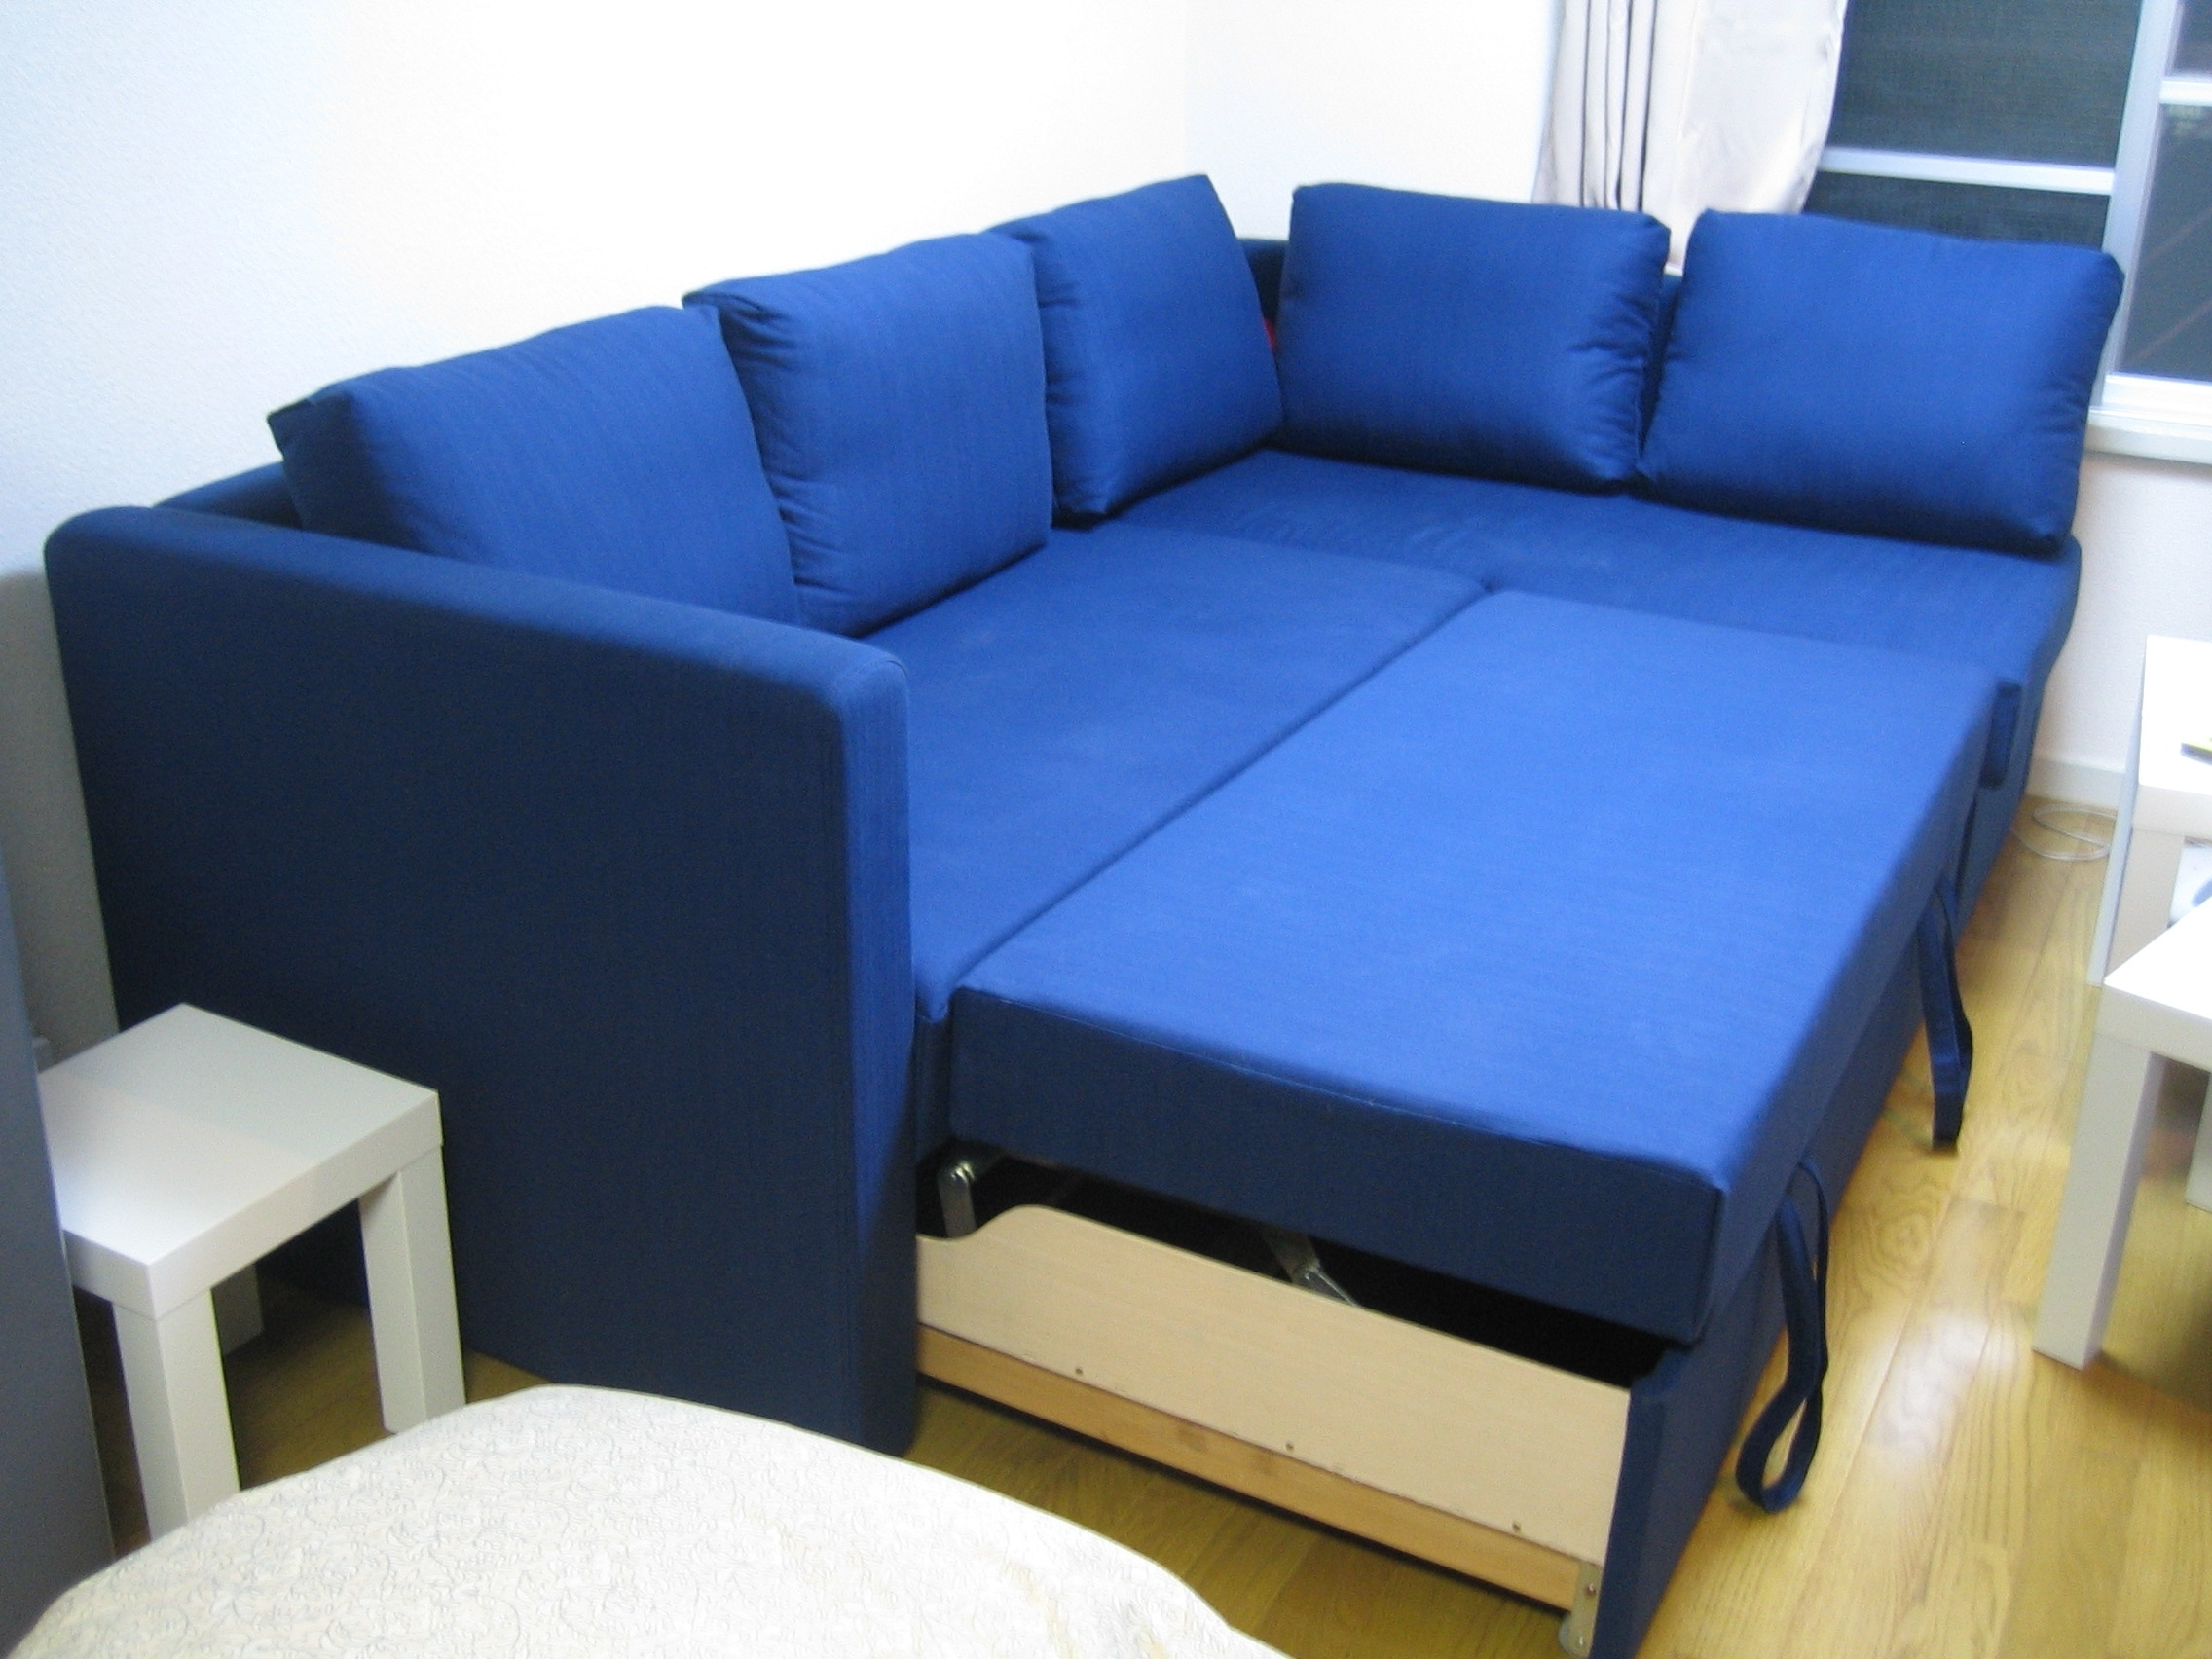 Sectional Sofa That Turns Into A Bed • Sofa Bed inside Most Popular Sectional Sofas That Turn Into Beds